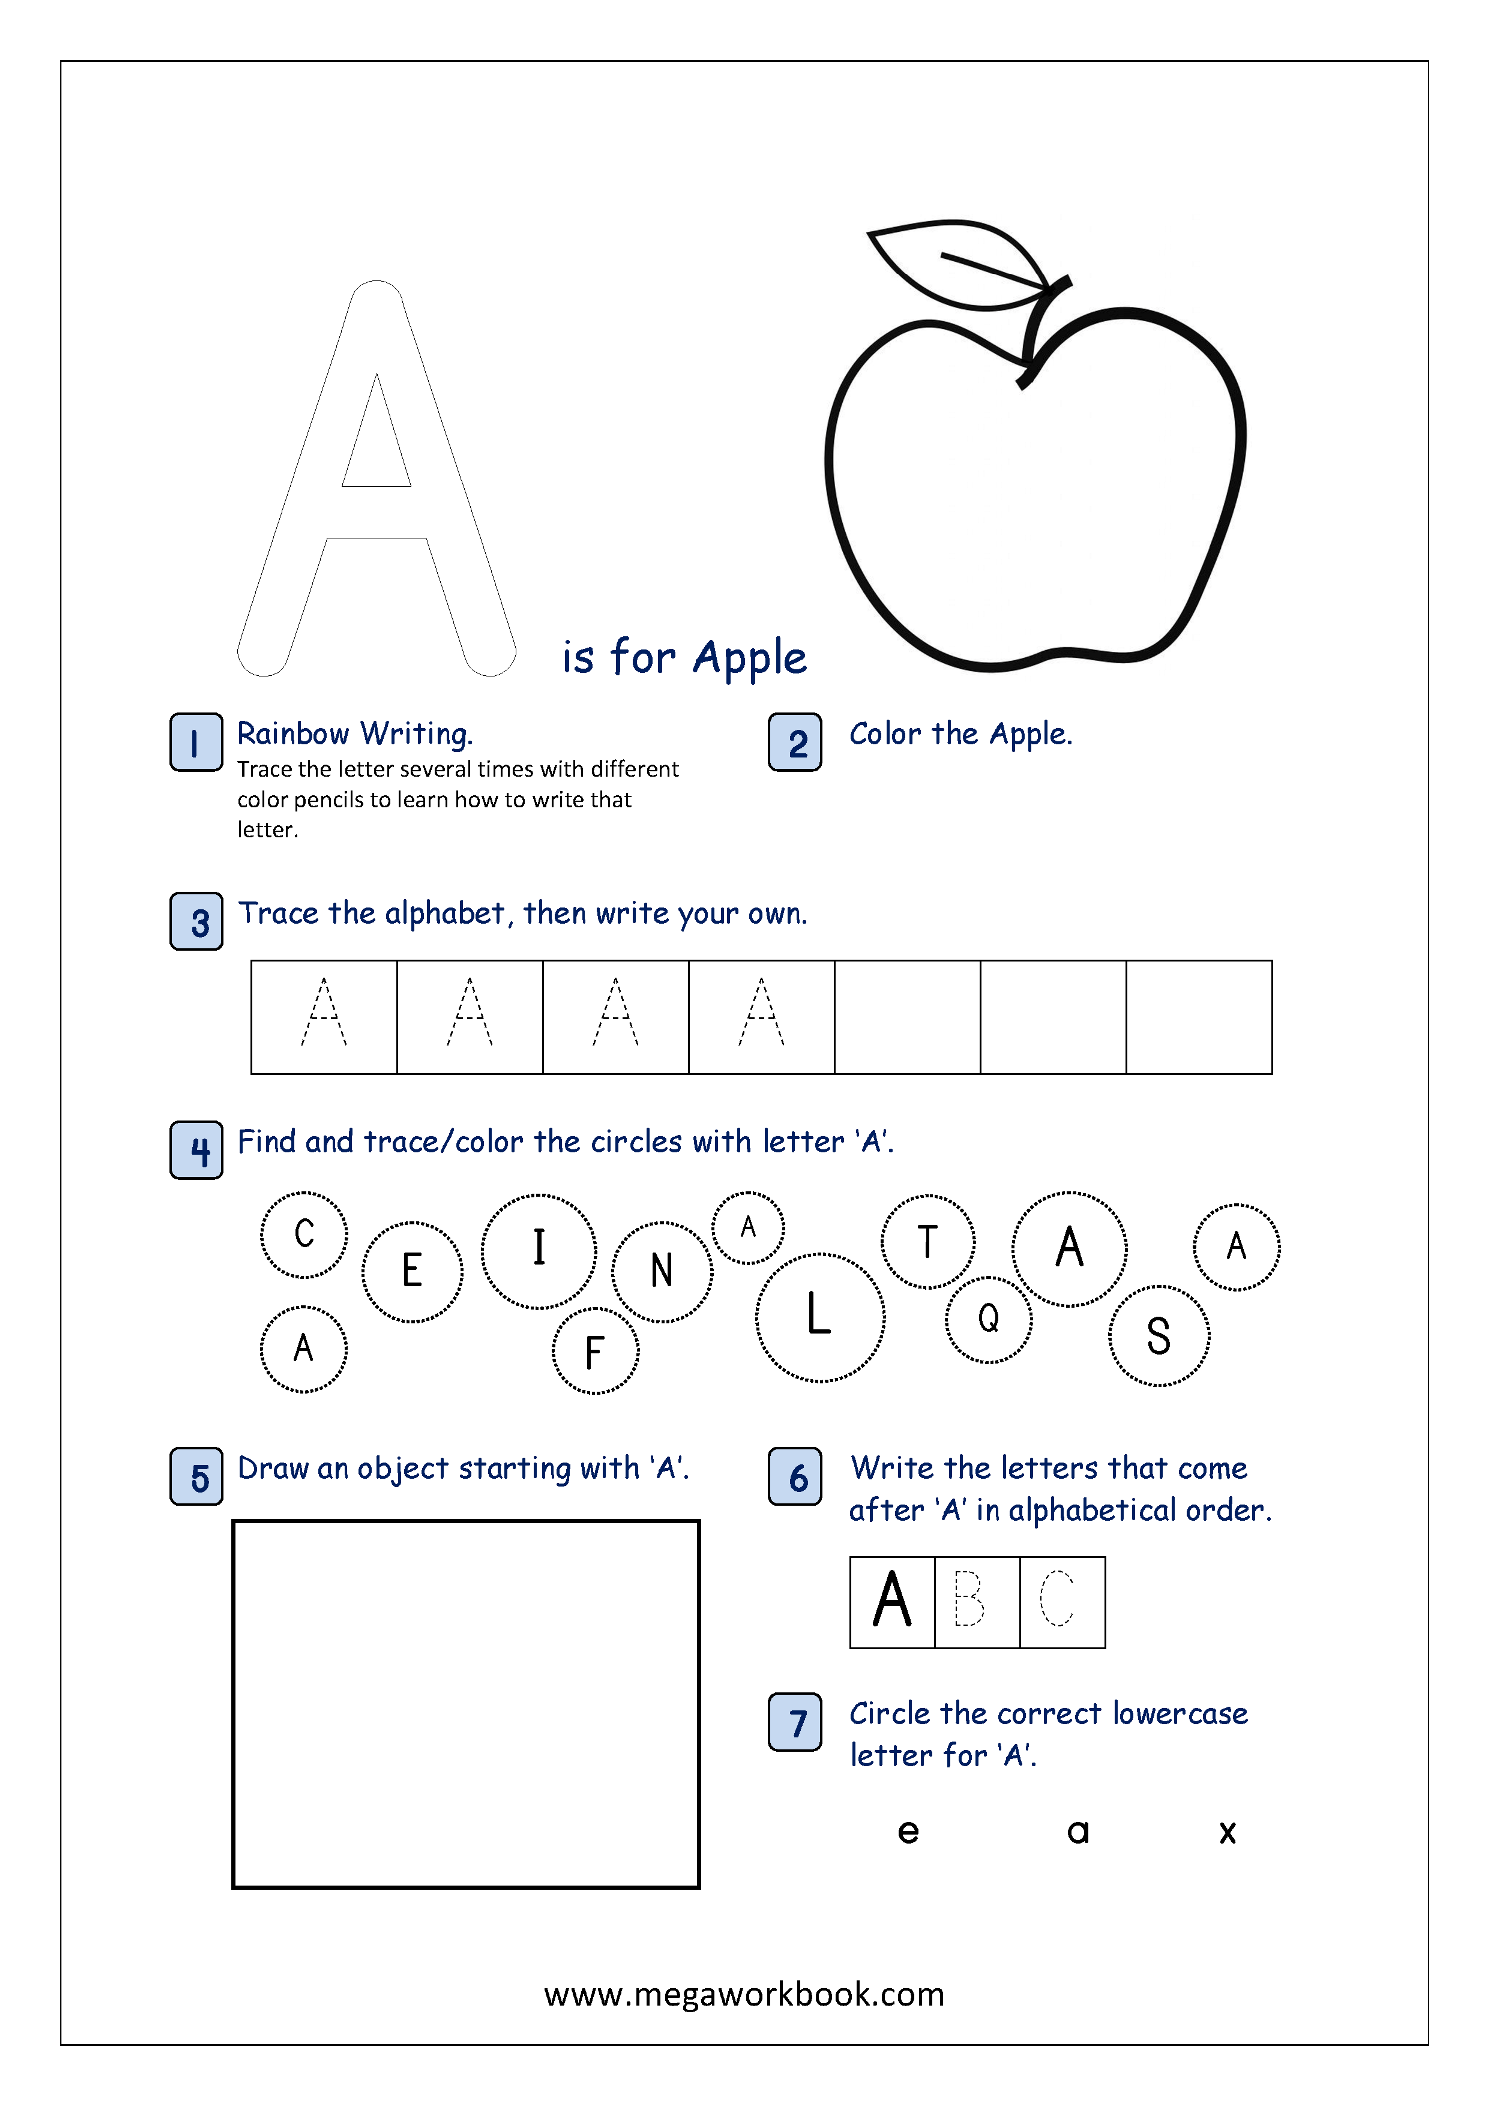 Free printable alphabet recognition worksheets for capital letters megaworkbook